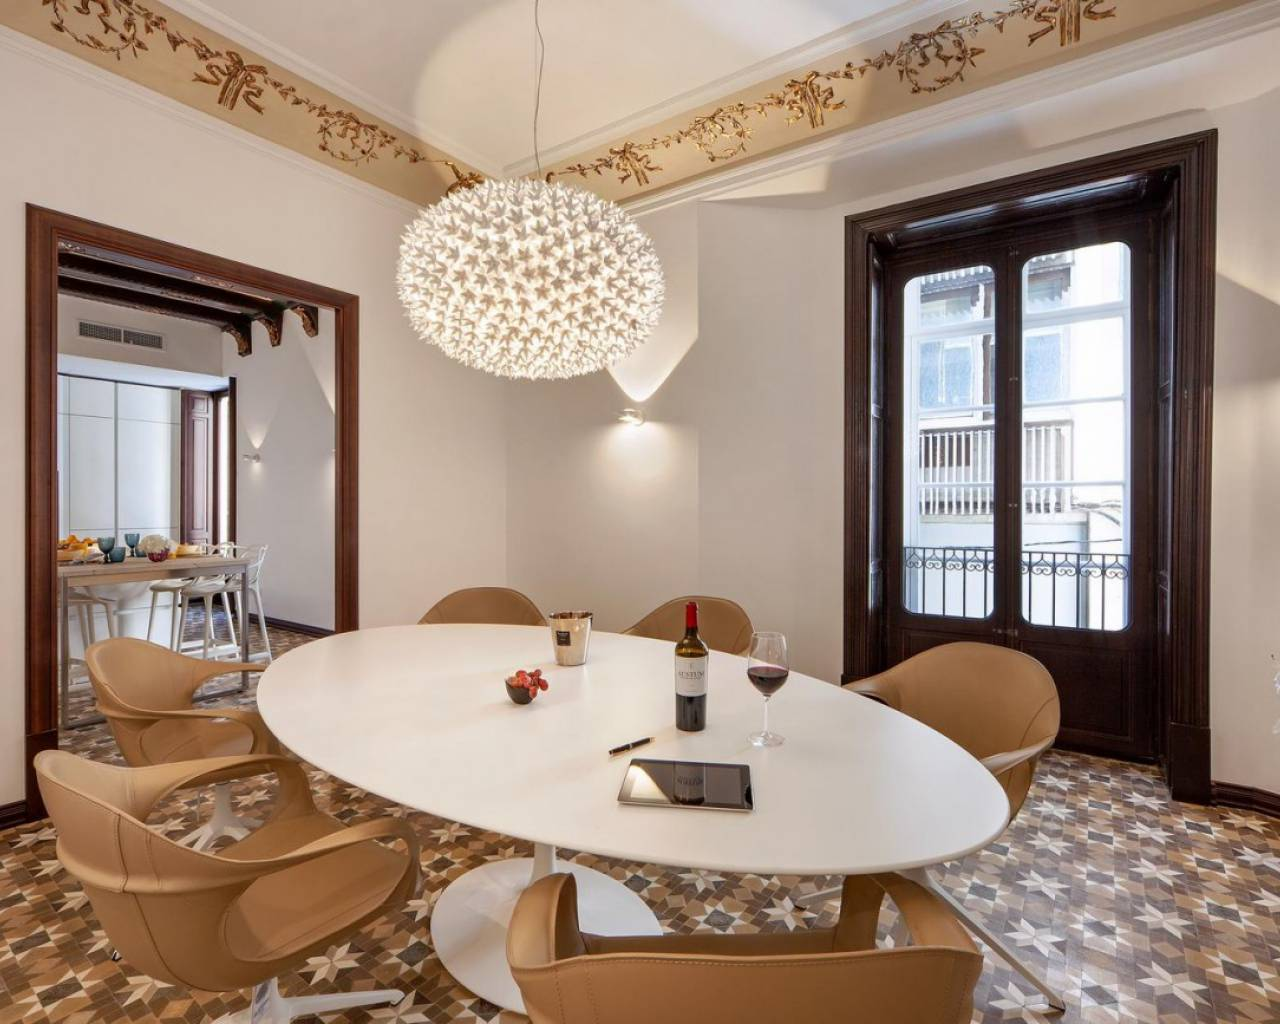 For sale - Apartment - Palma de Mallorca - Palma De Mallorca